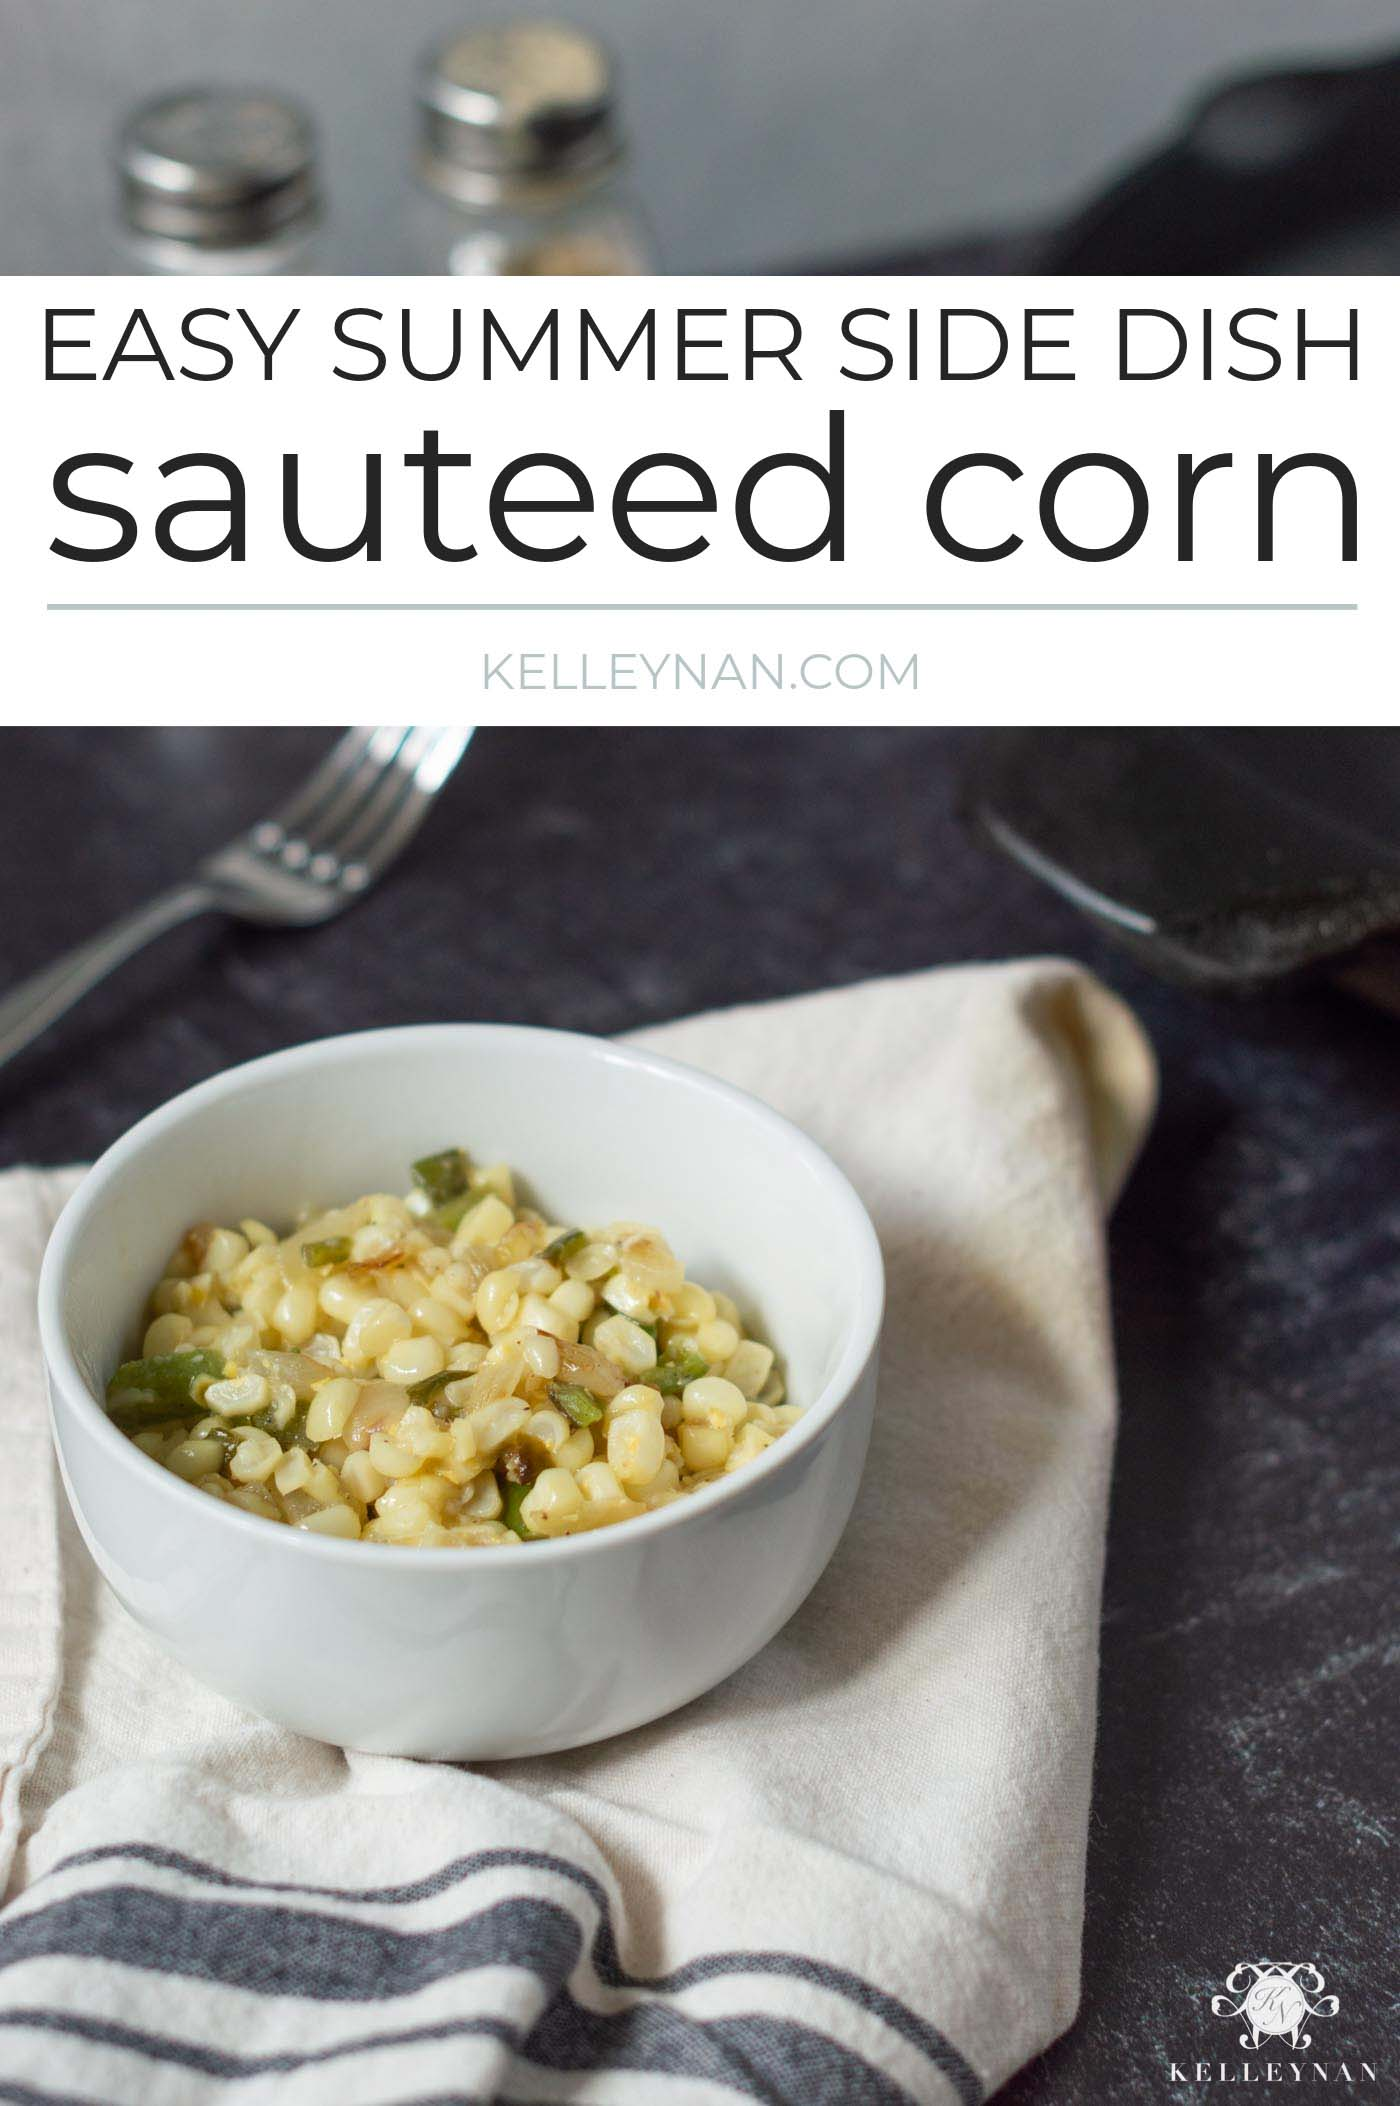 Easy Summer Side Dish Recipe: How to Make Sauteed Corn